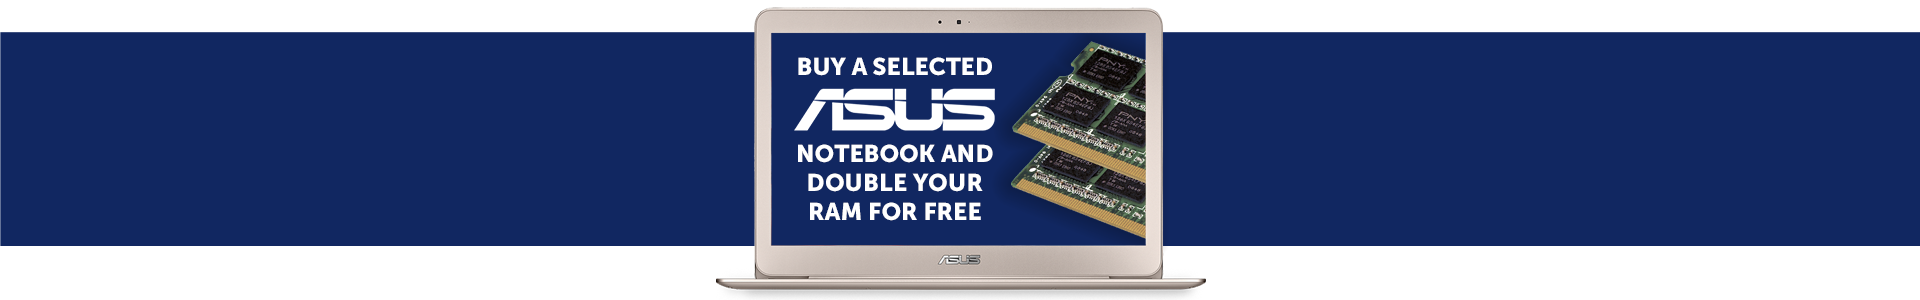 Asus double your ram promo banner